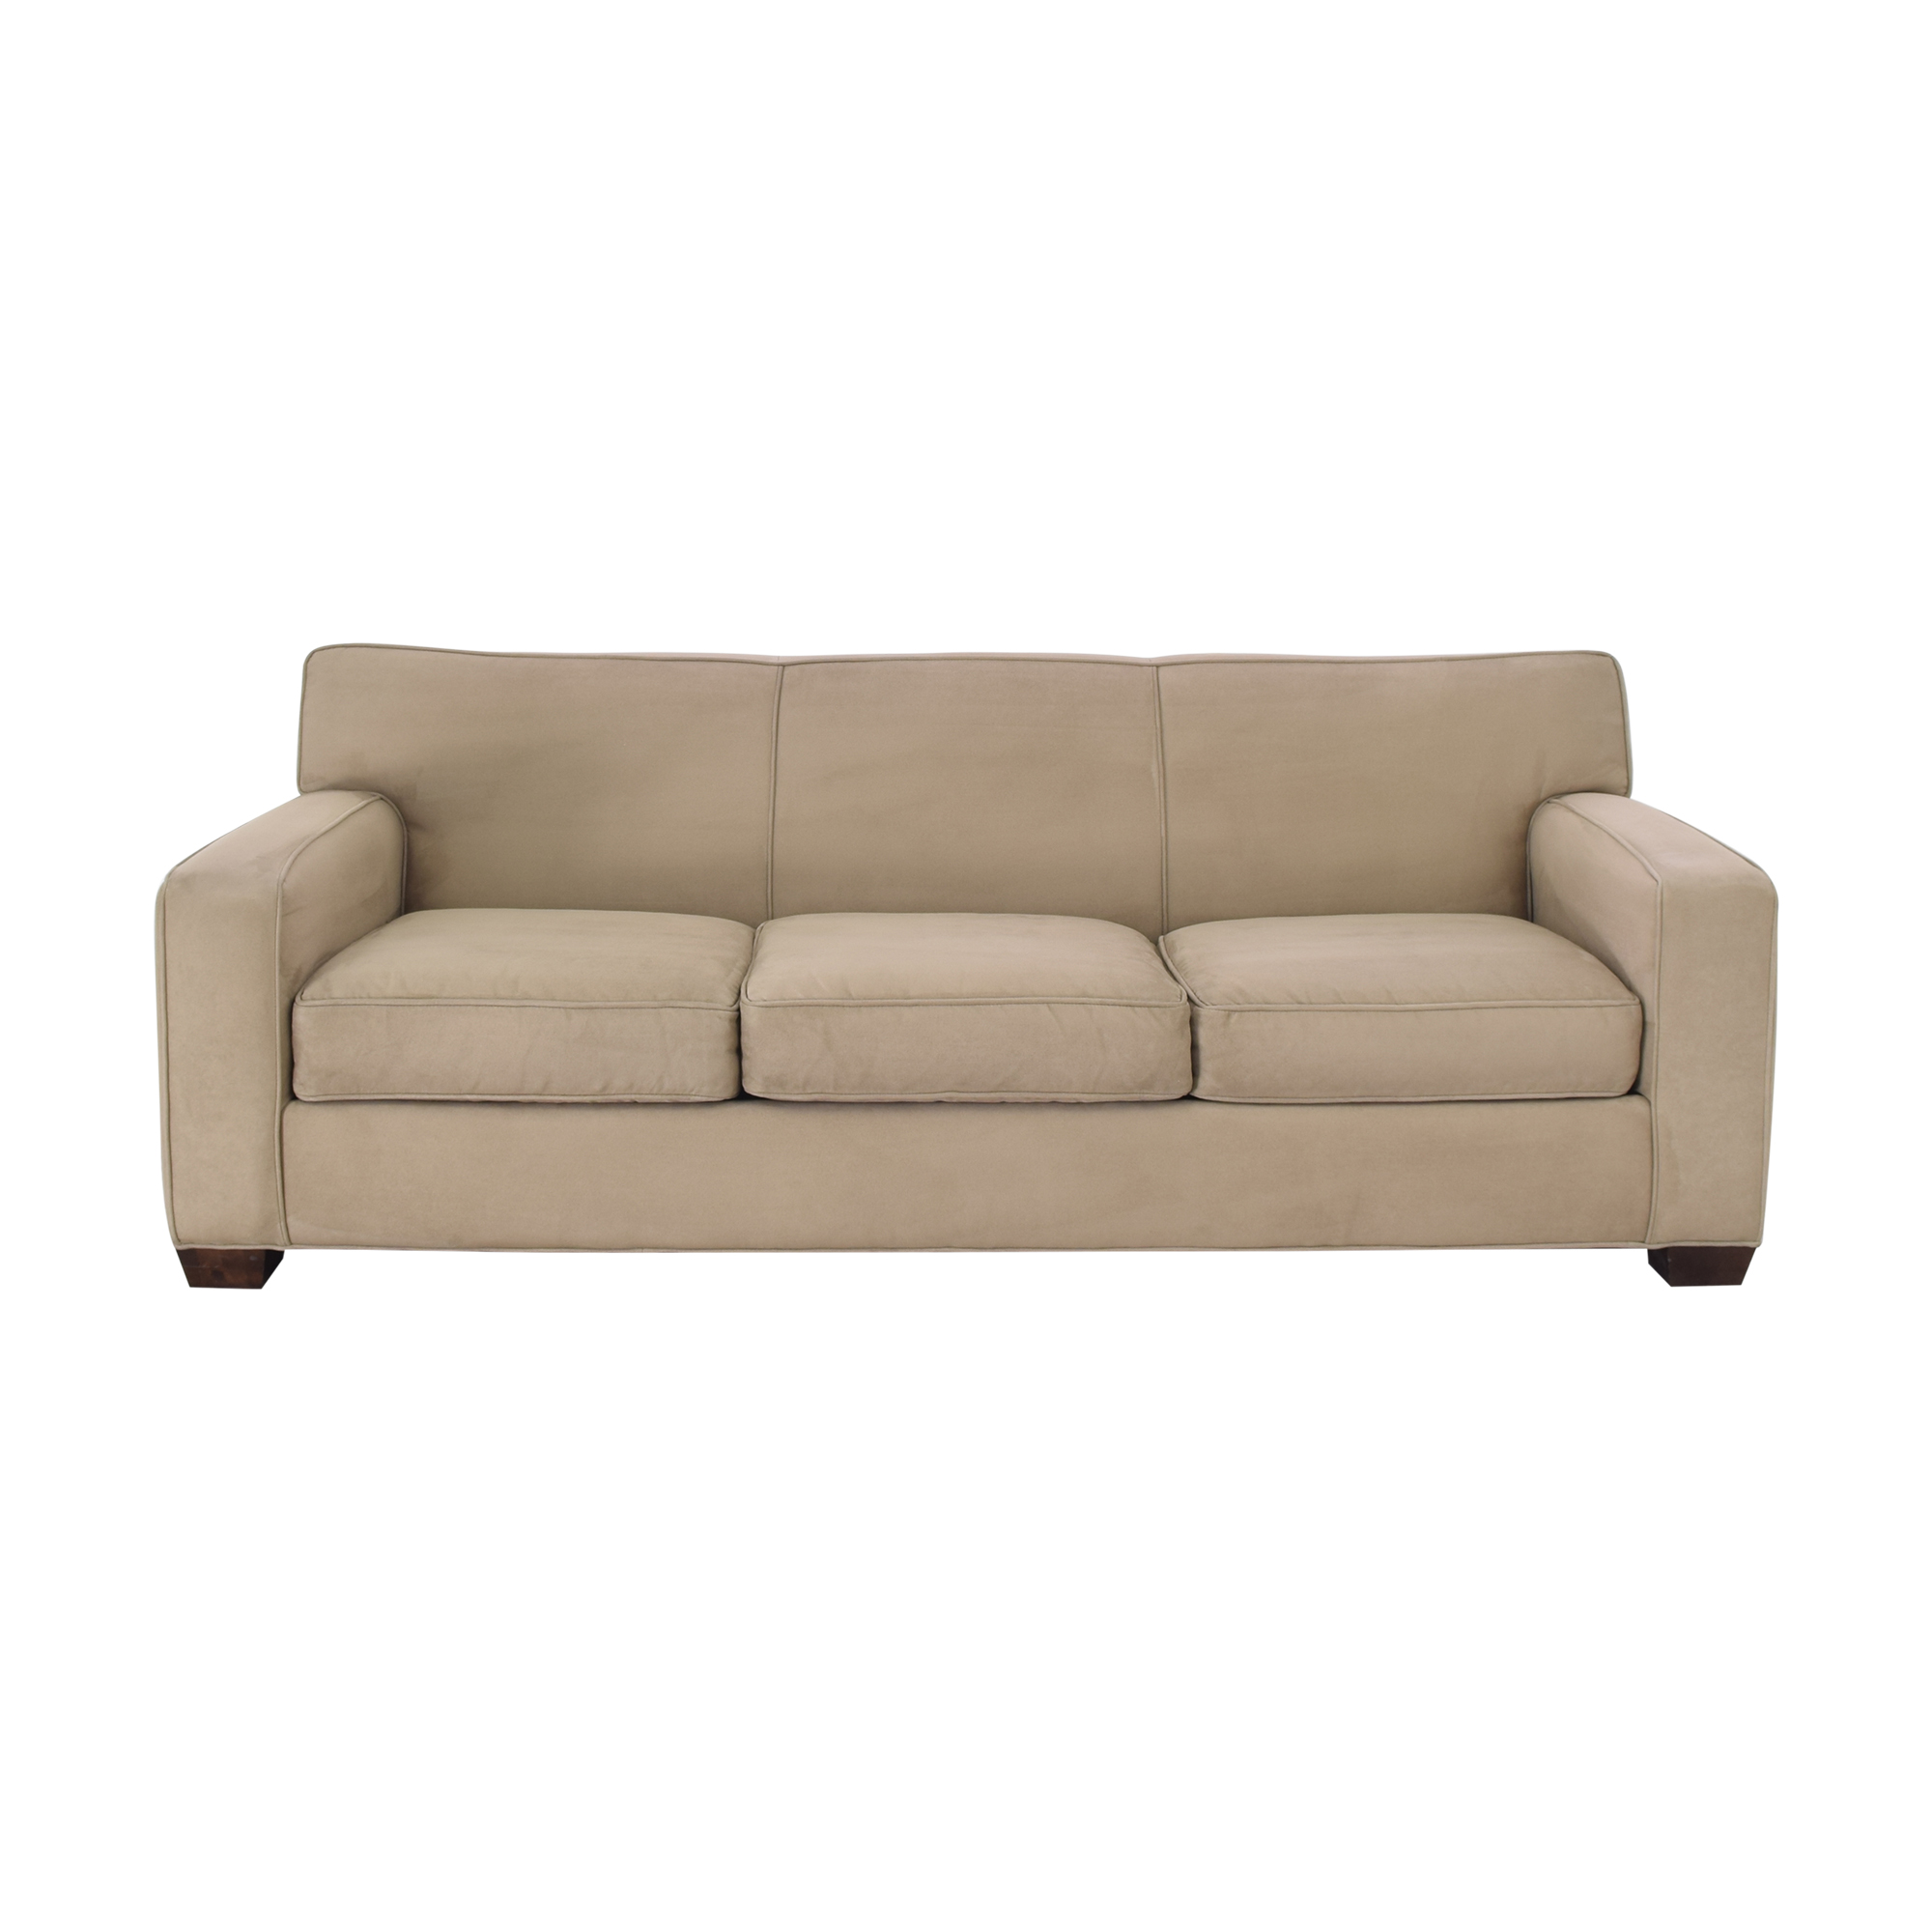 Crate & Barrel Crate & Barrel Three Cushion Sofa ma